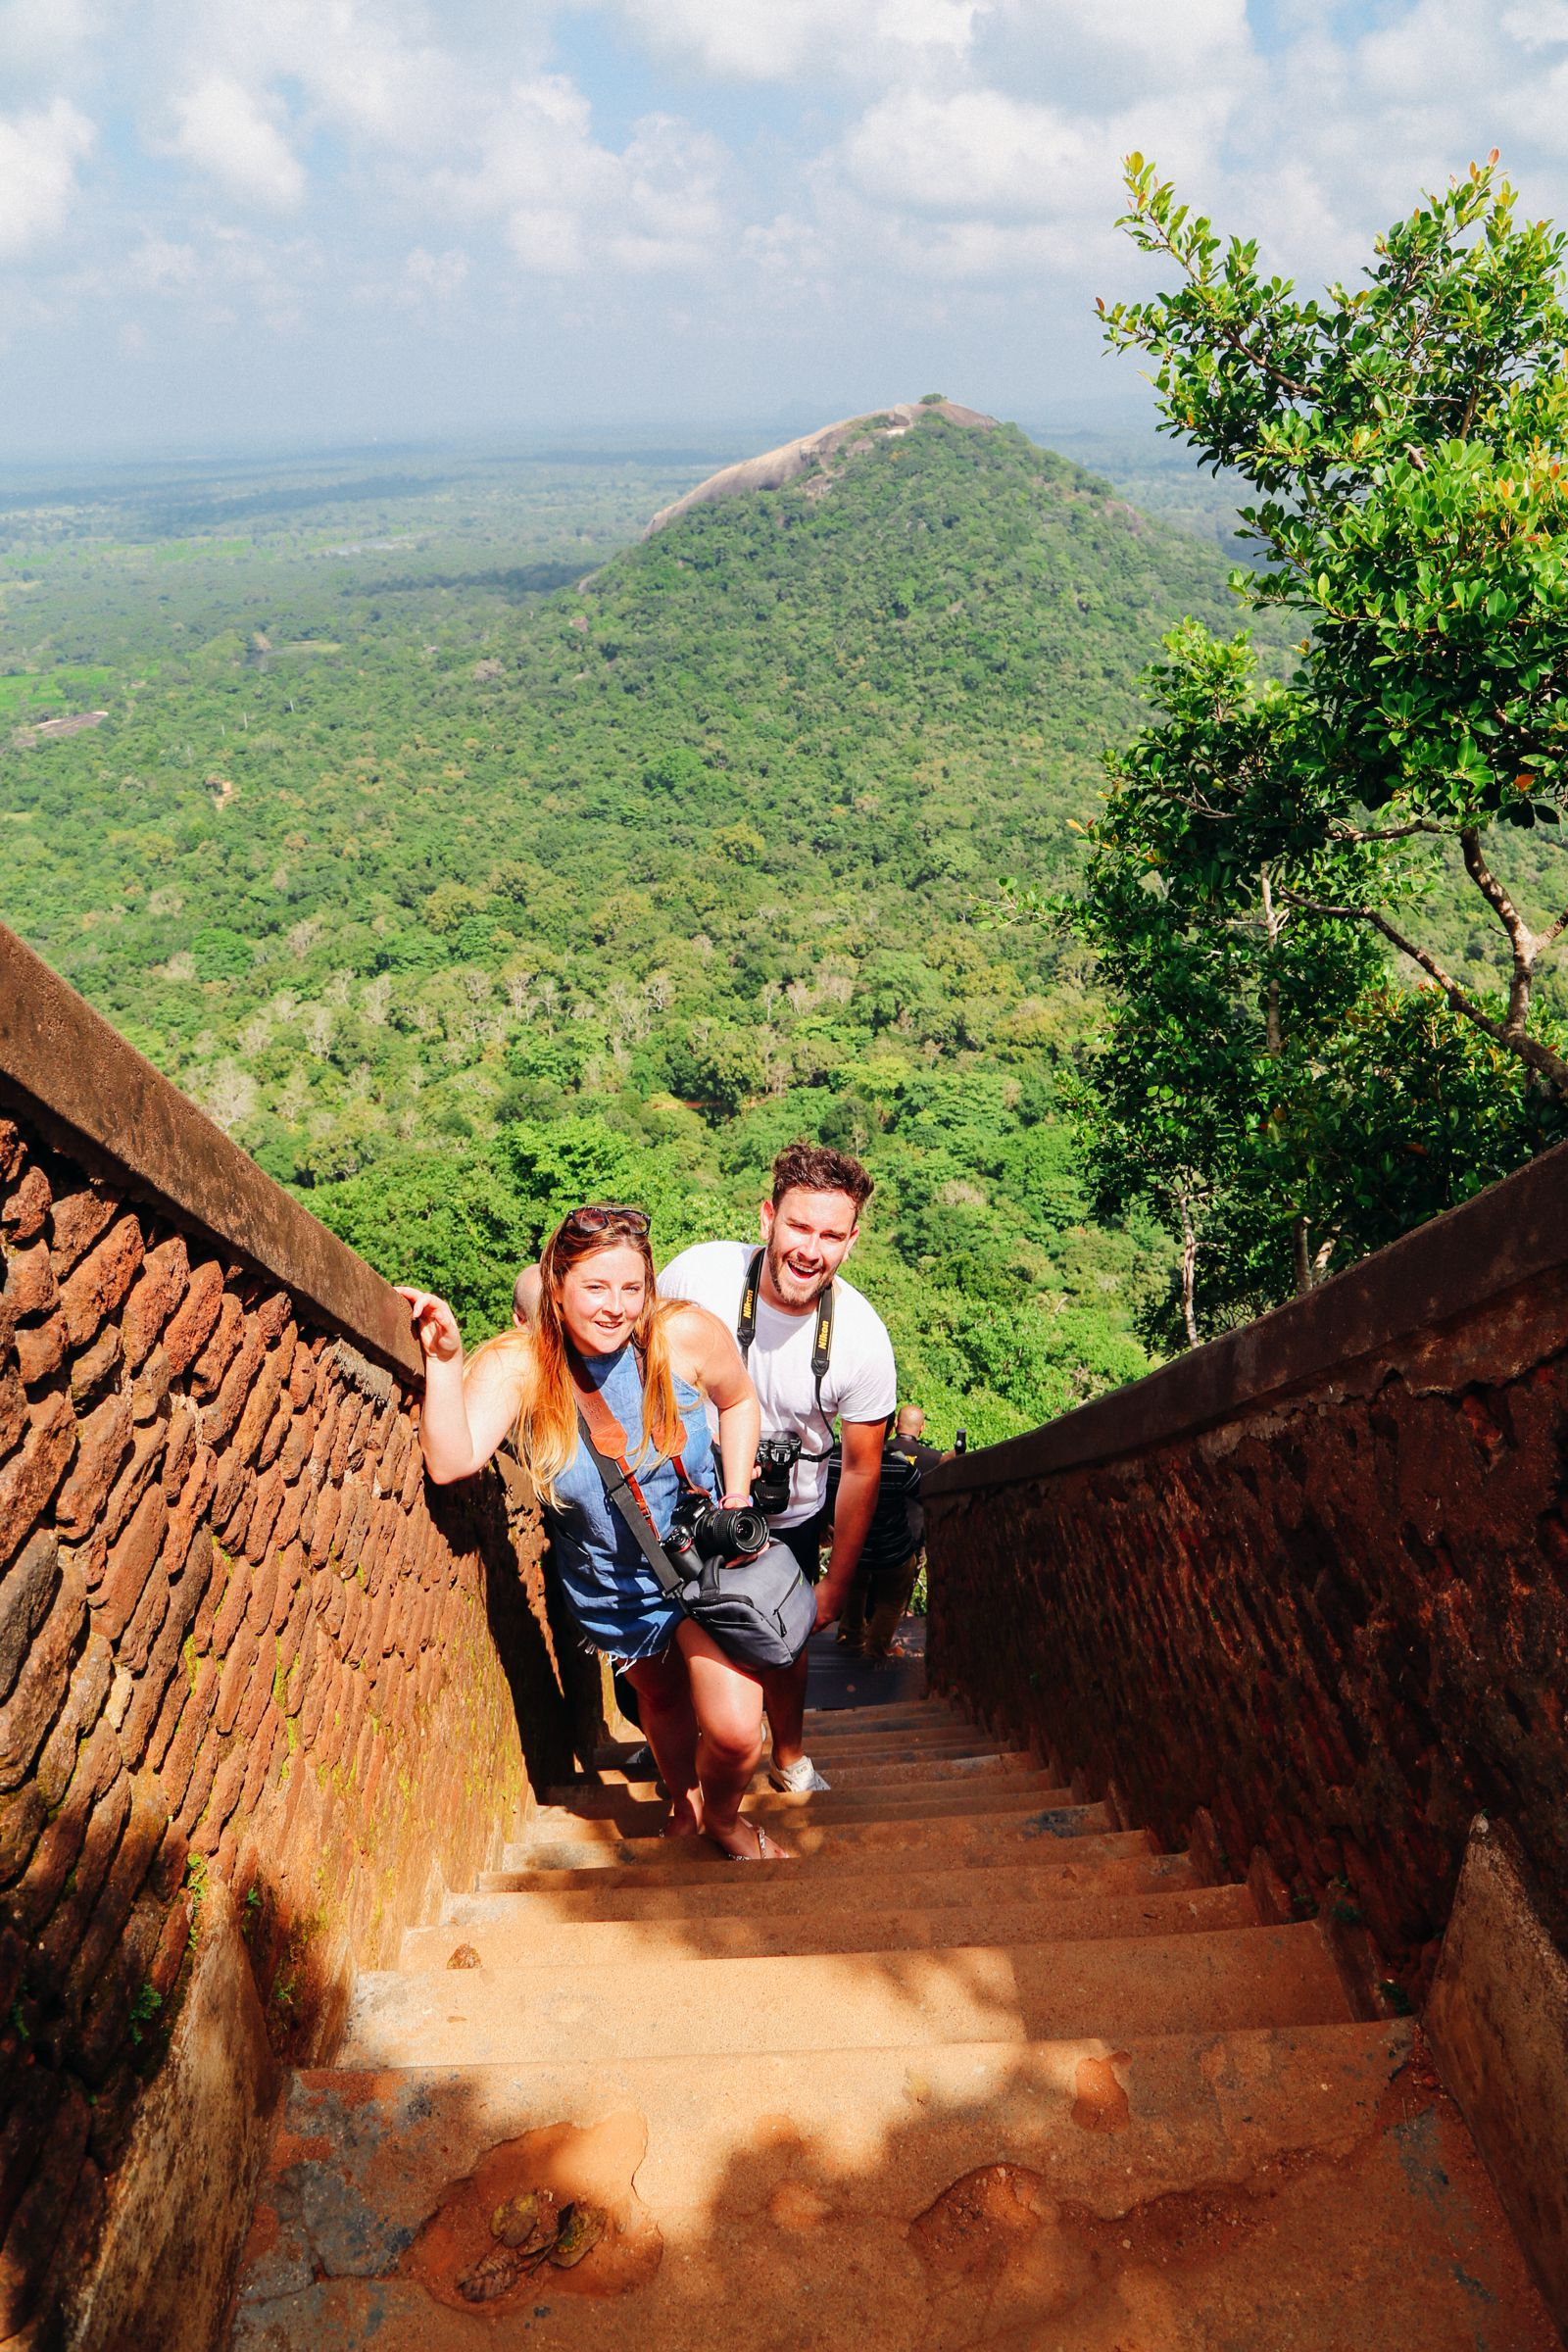 The Complete Guide To Climbing Sri Lanka's UNESCO World Heritage Site Of Sigiriya - Lion Rock (32)